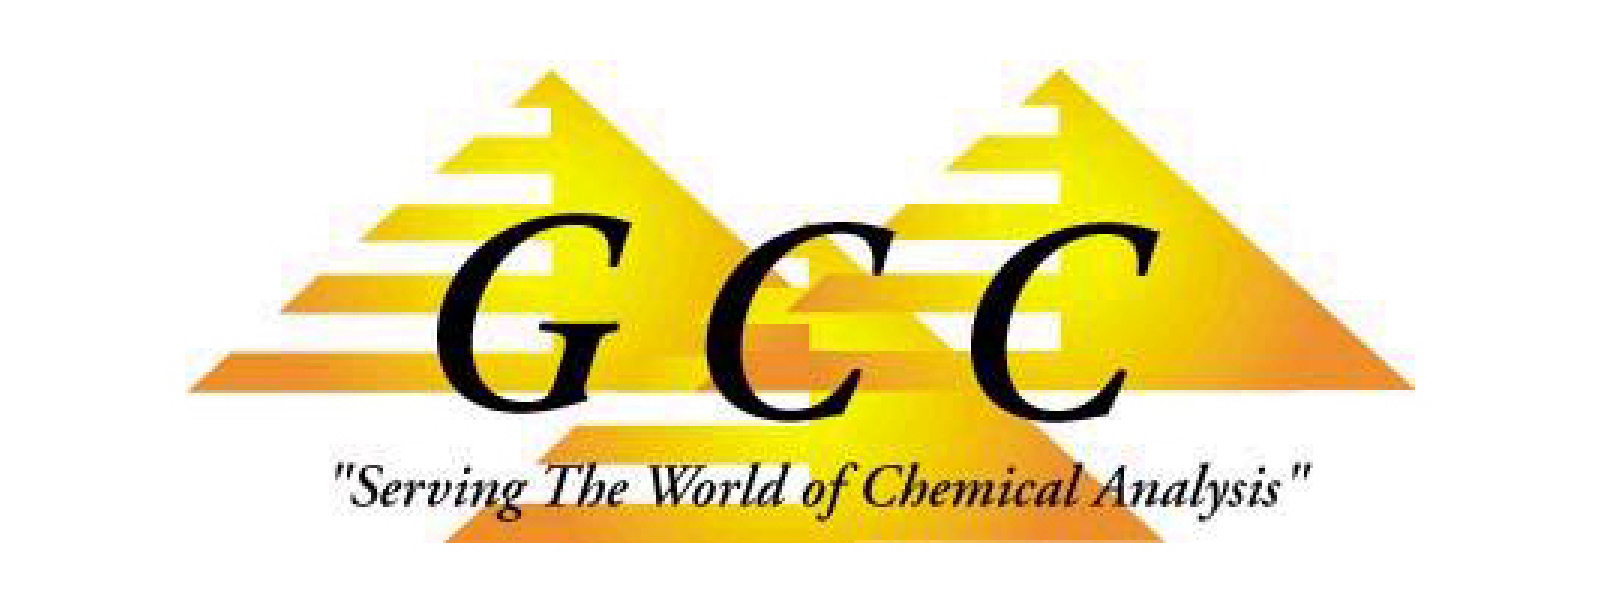 Chemical Analysis Technology GCC 2018